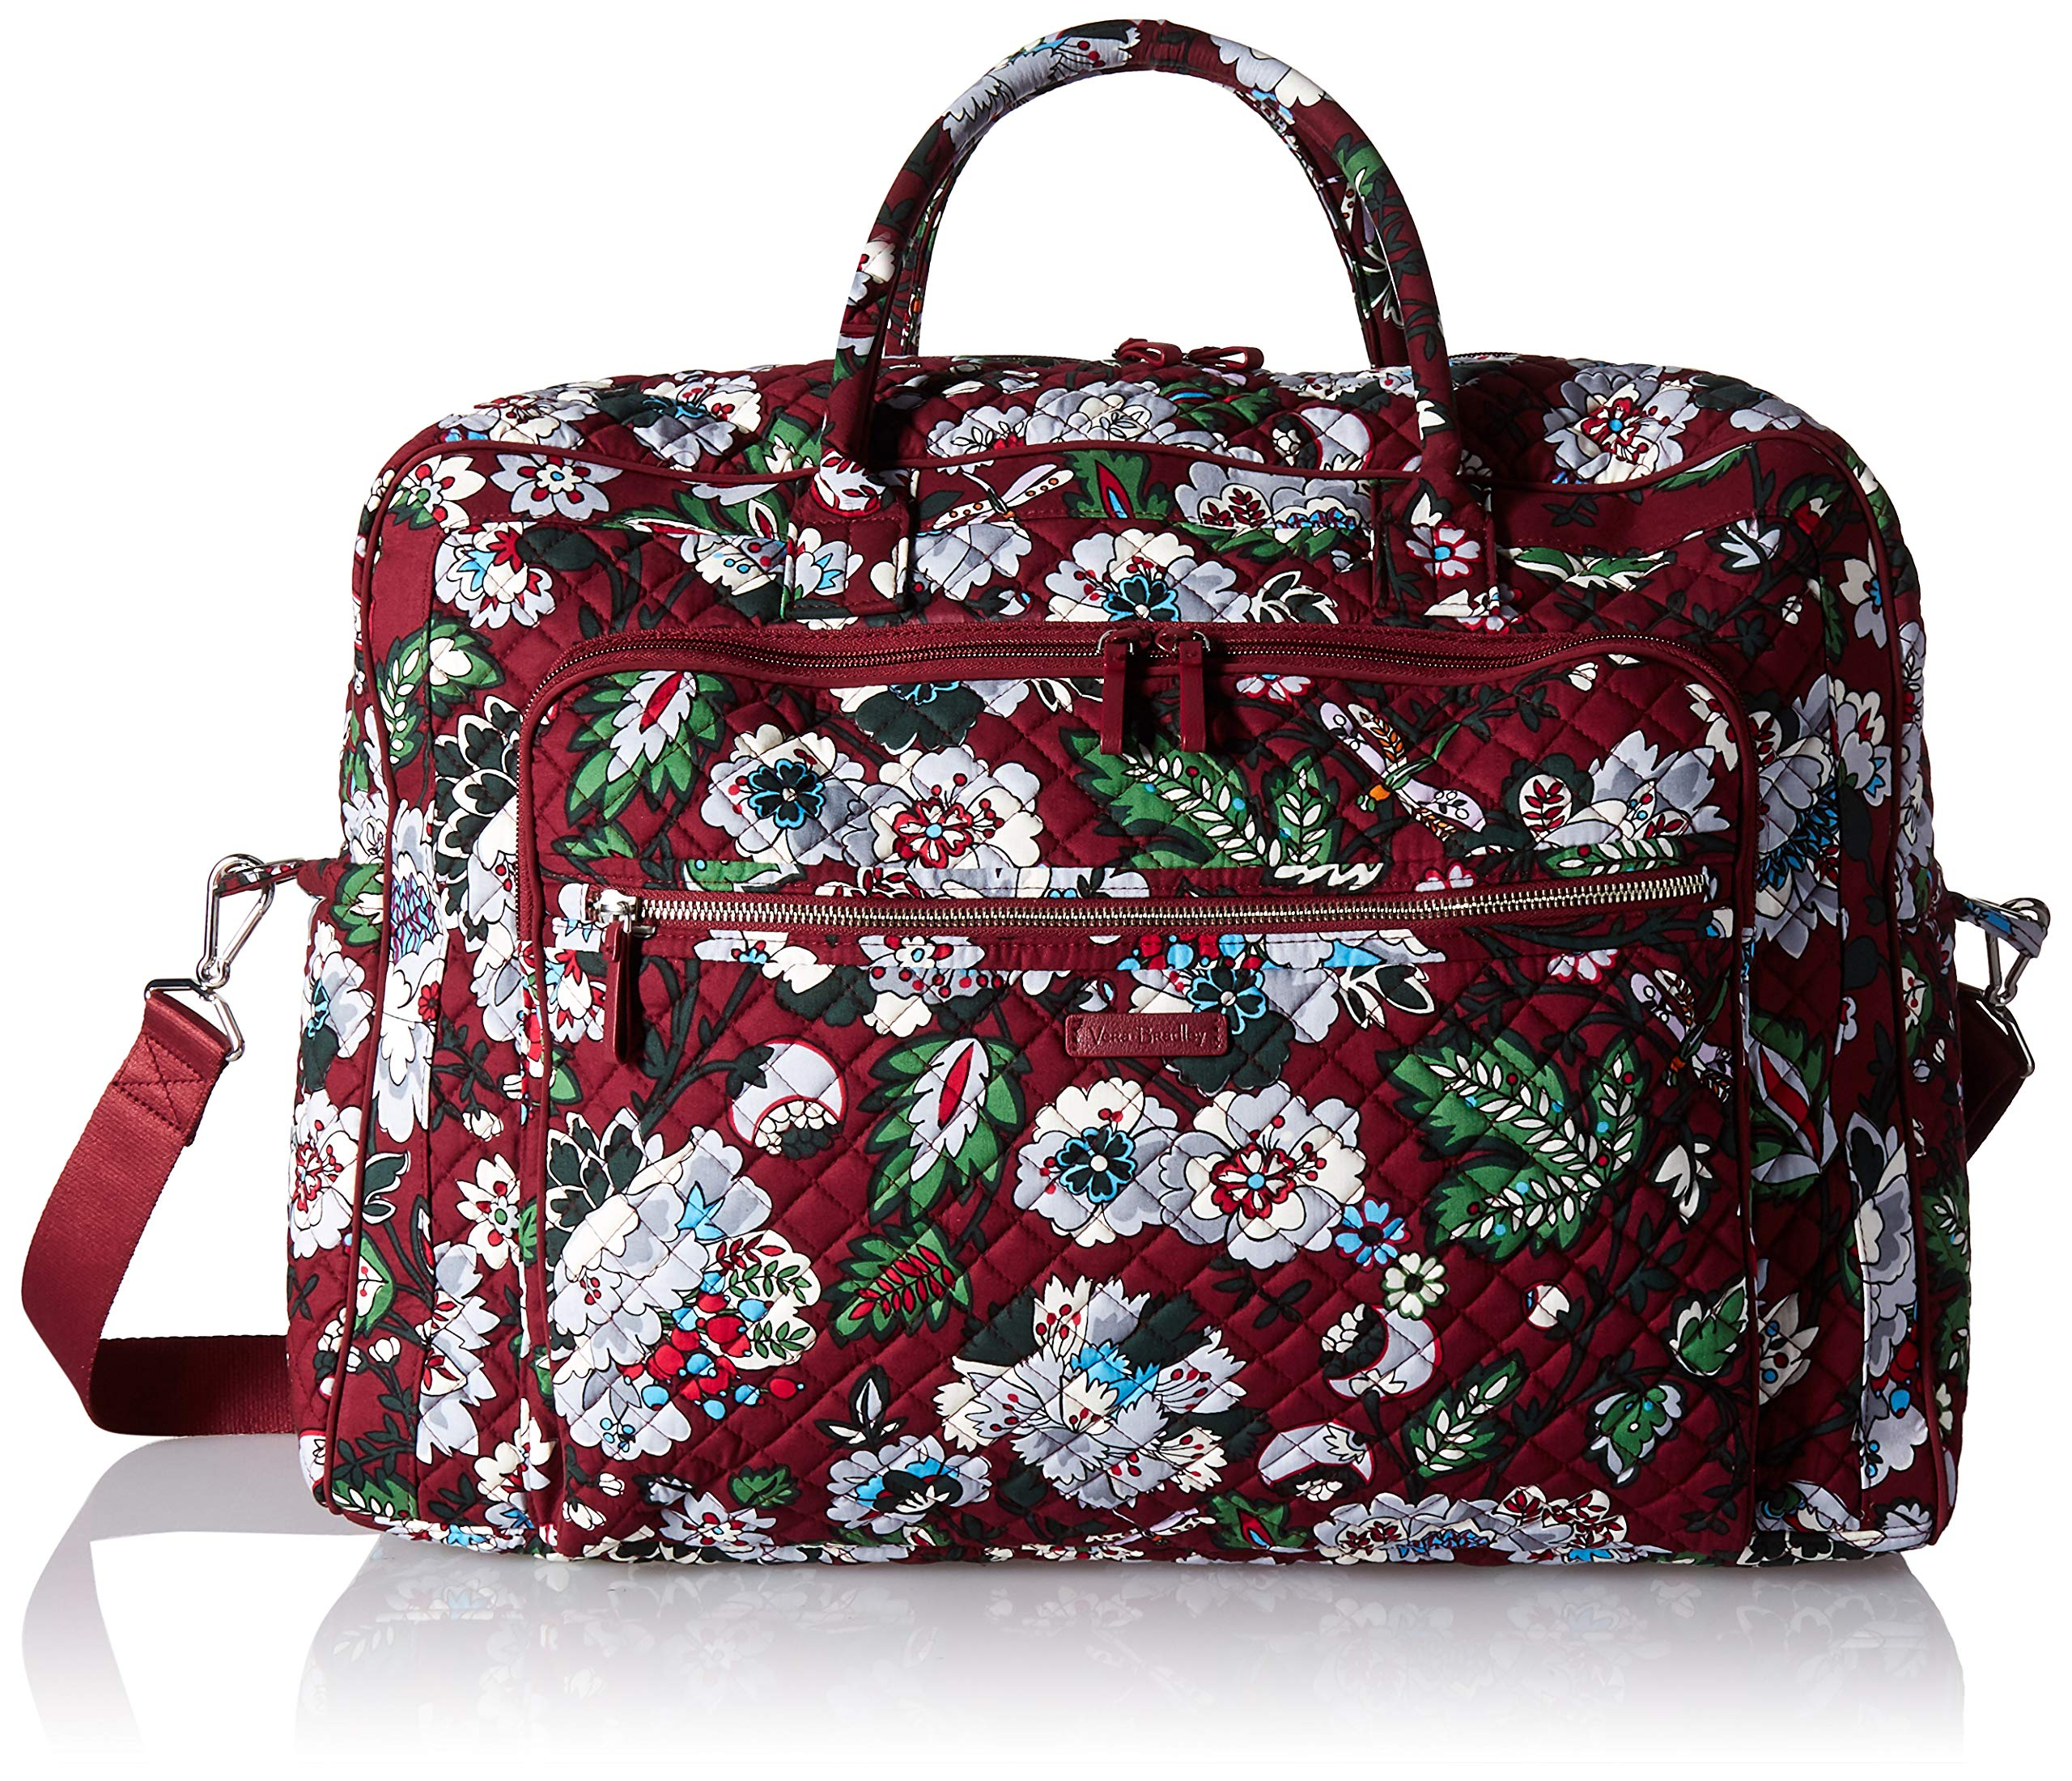 Vera Bradley Iconic Grand Weekender Travel Bag, Signature Cotton, bordeaux blooms by Vera Bradley (Image #2)